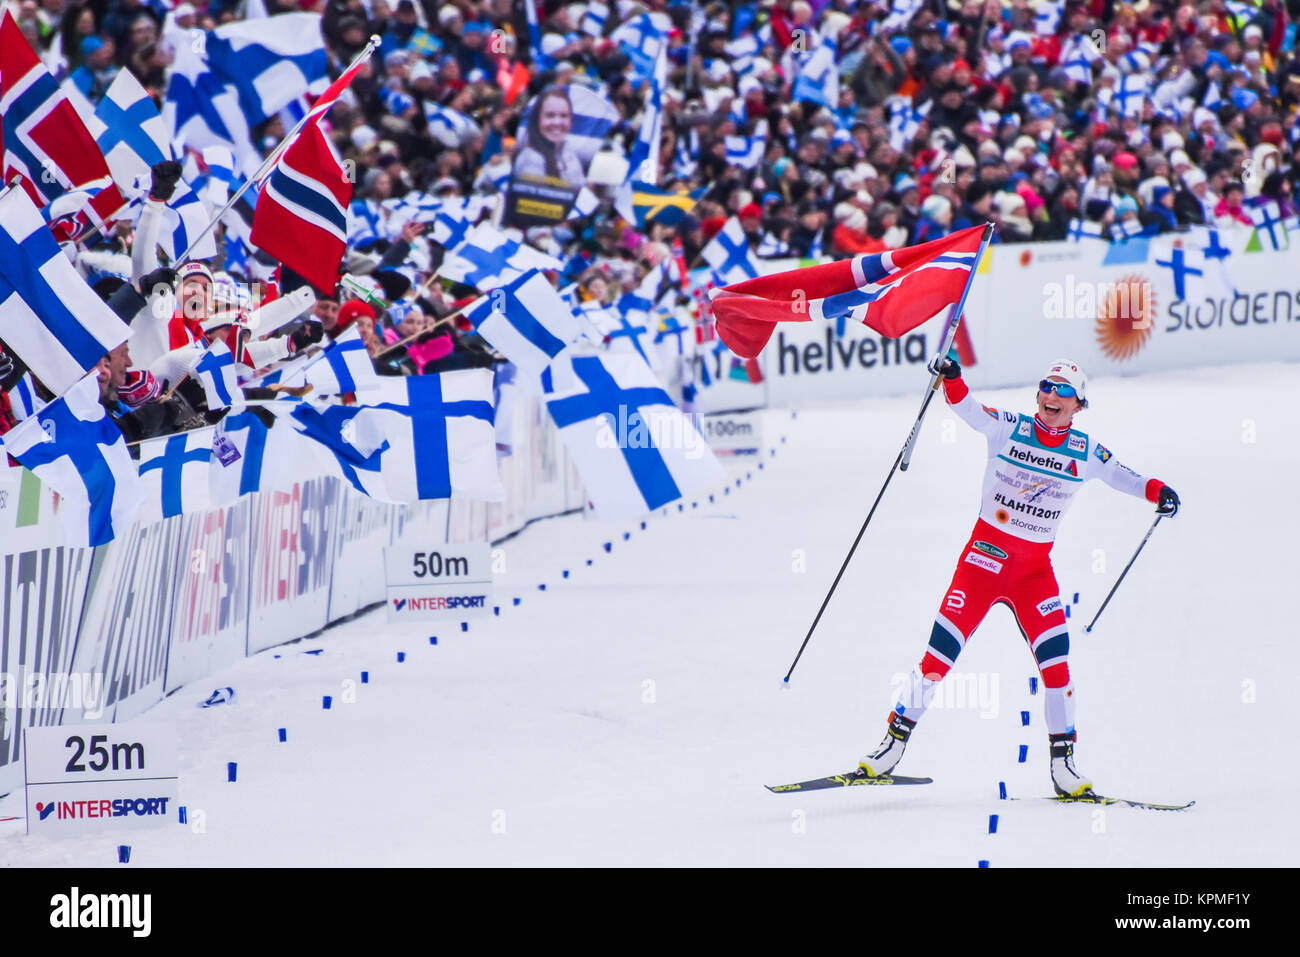 Norway's Marit Bjorgen celebrates after Norway won women's relay, 2017 World Nordic Ski Championships, Lahti, - Stock Image